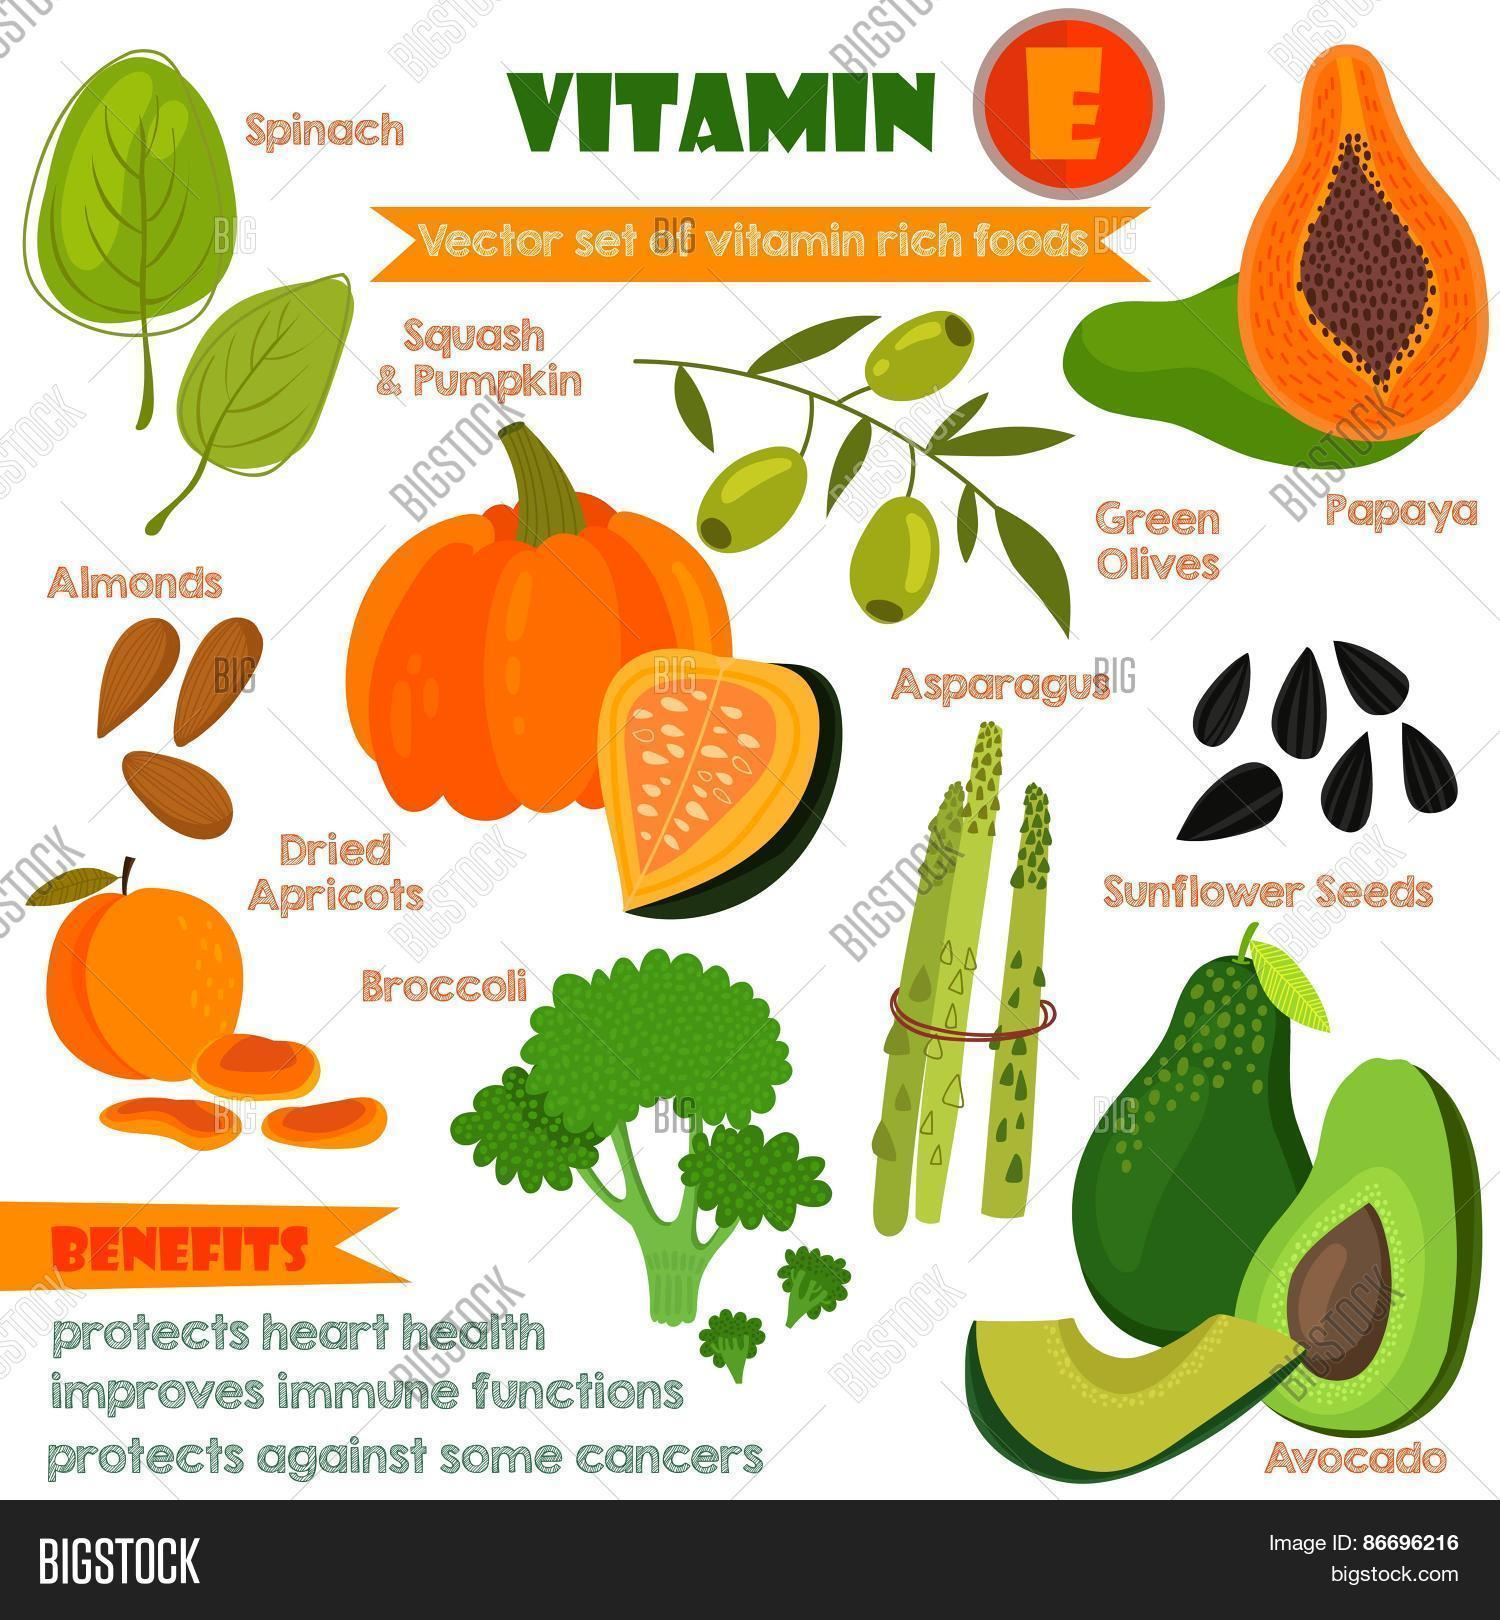 Foods High In Vitamin A And E